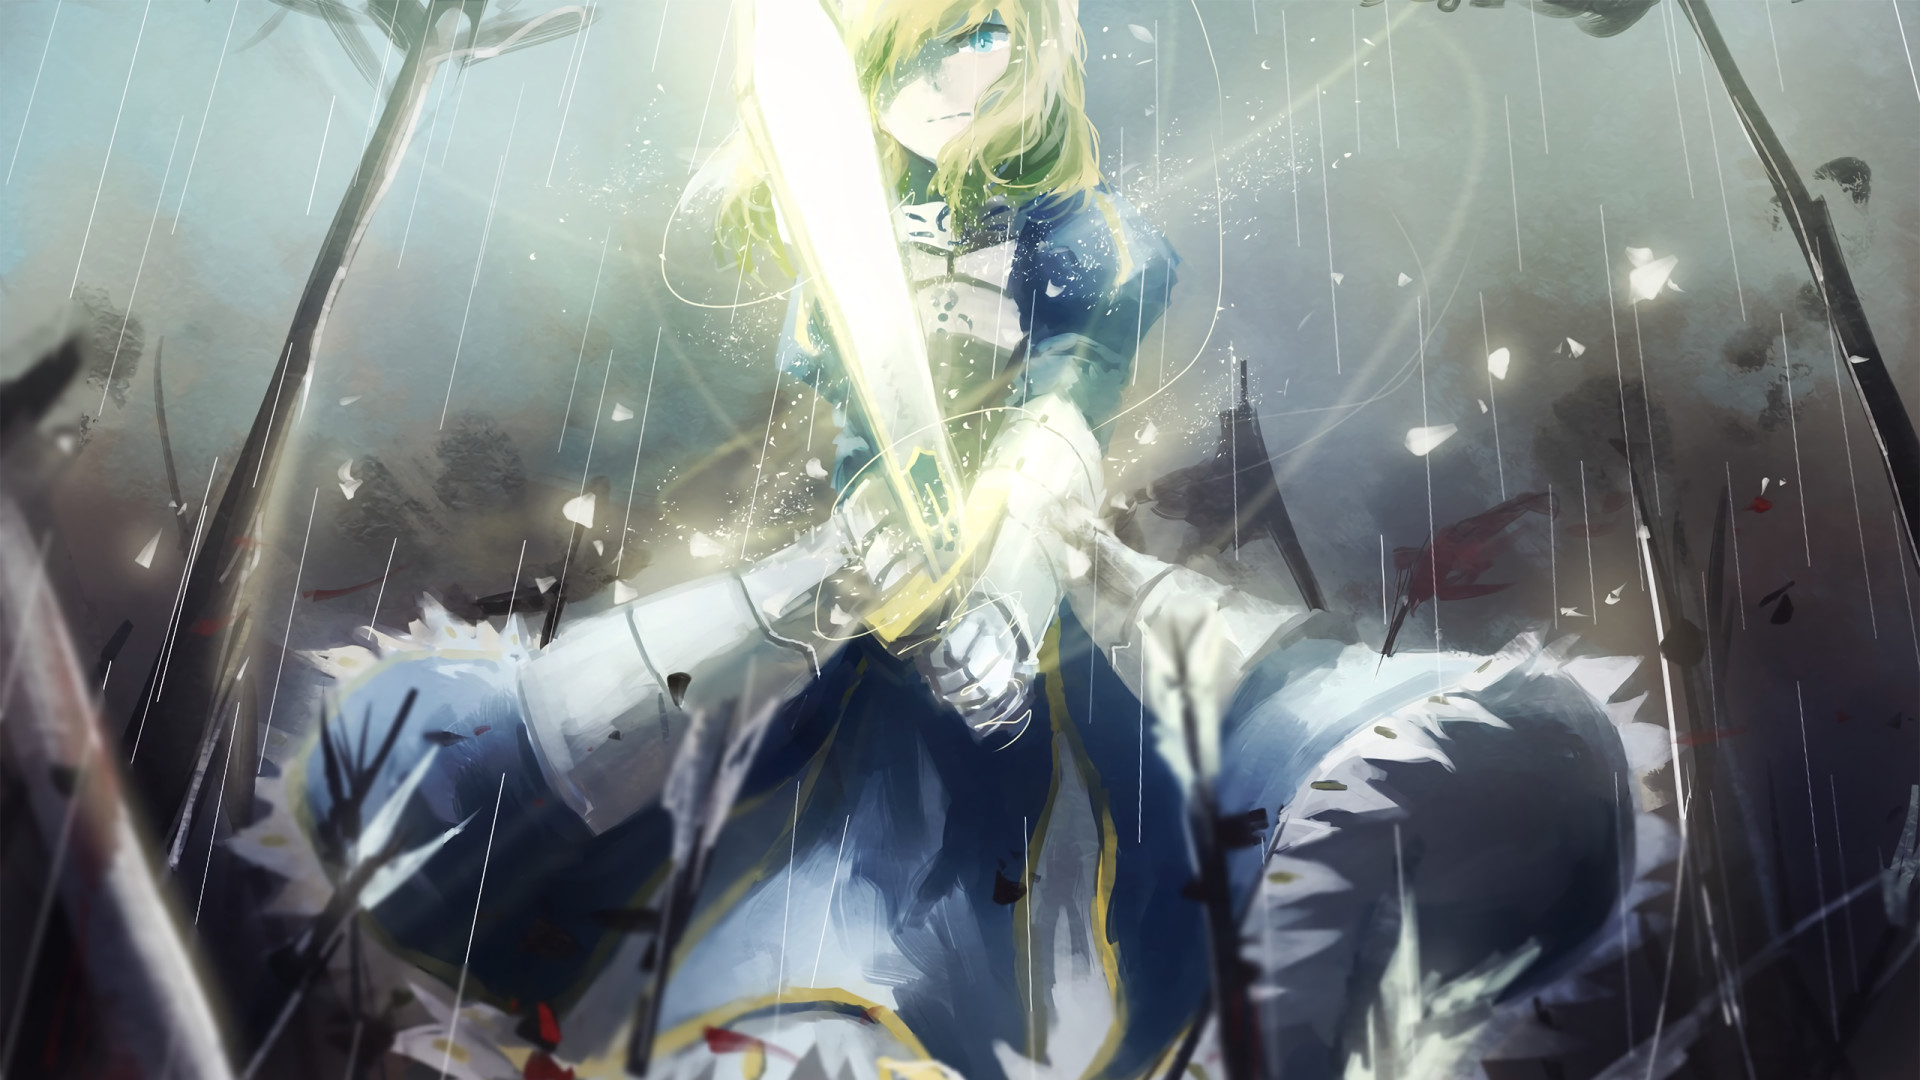 Anime Fate/Stay Night Saber (Fate Series) Wallpaper